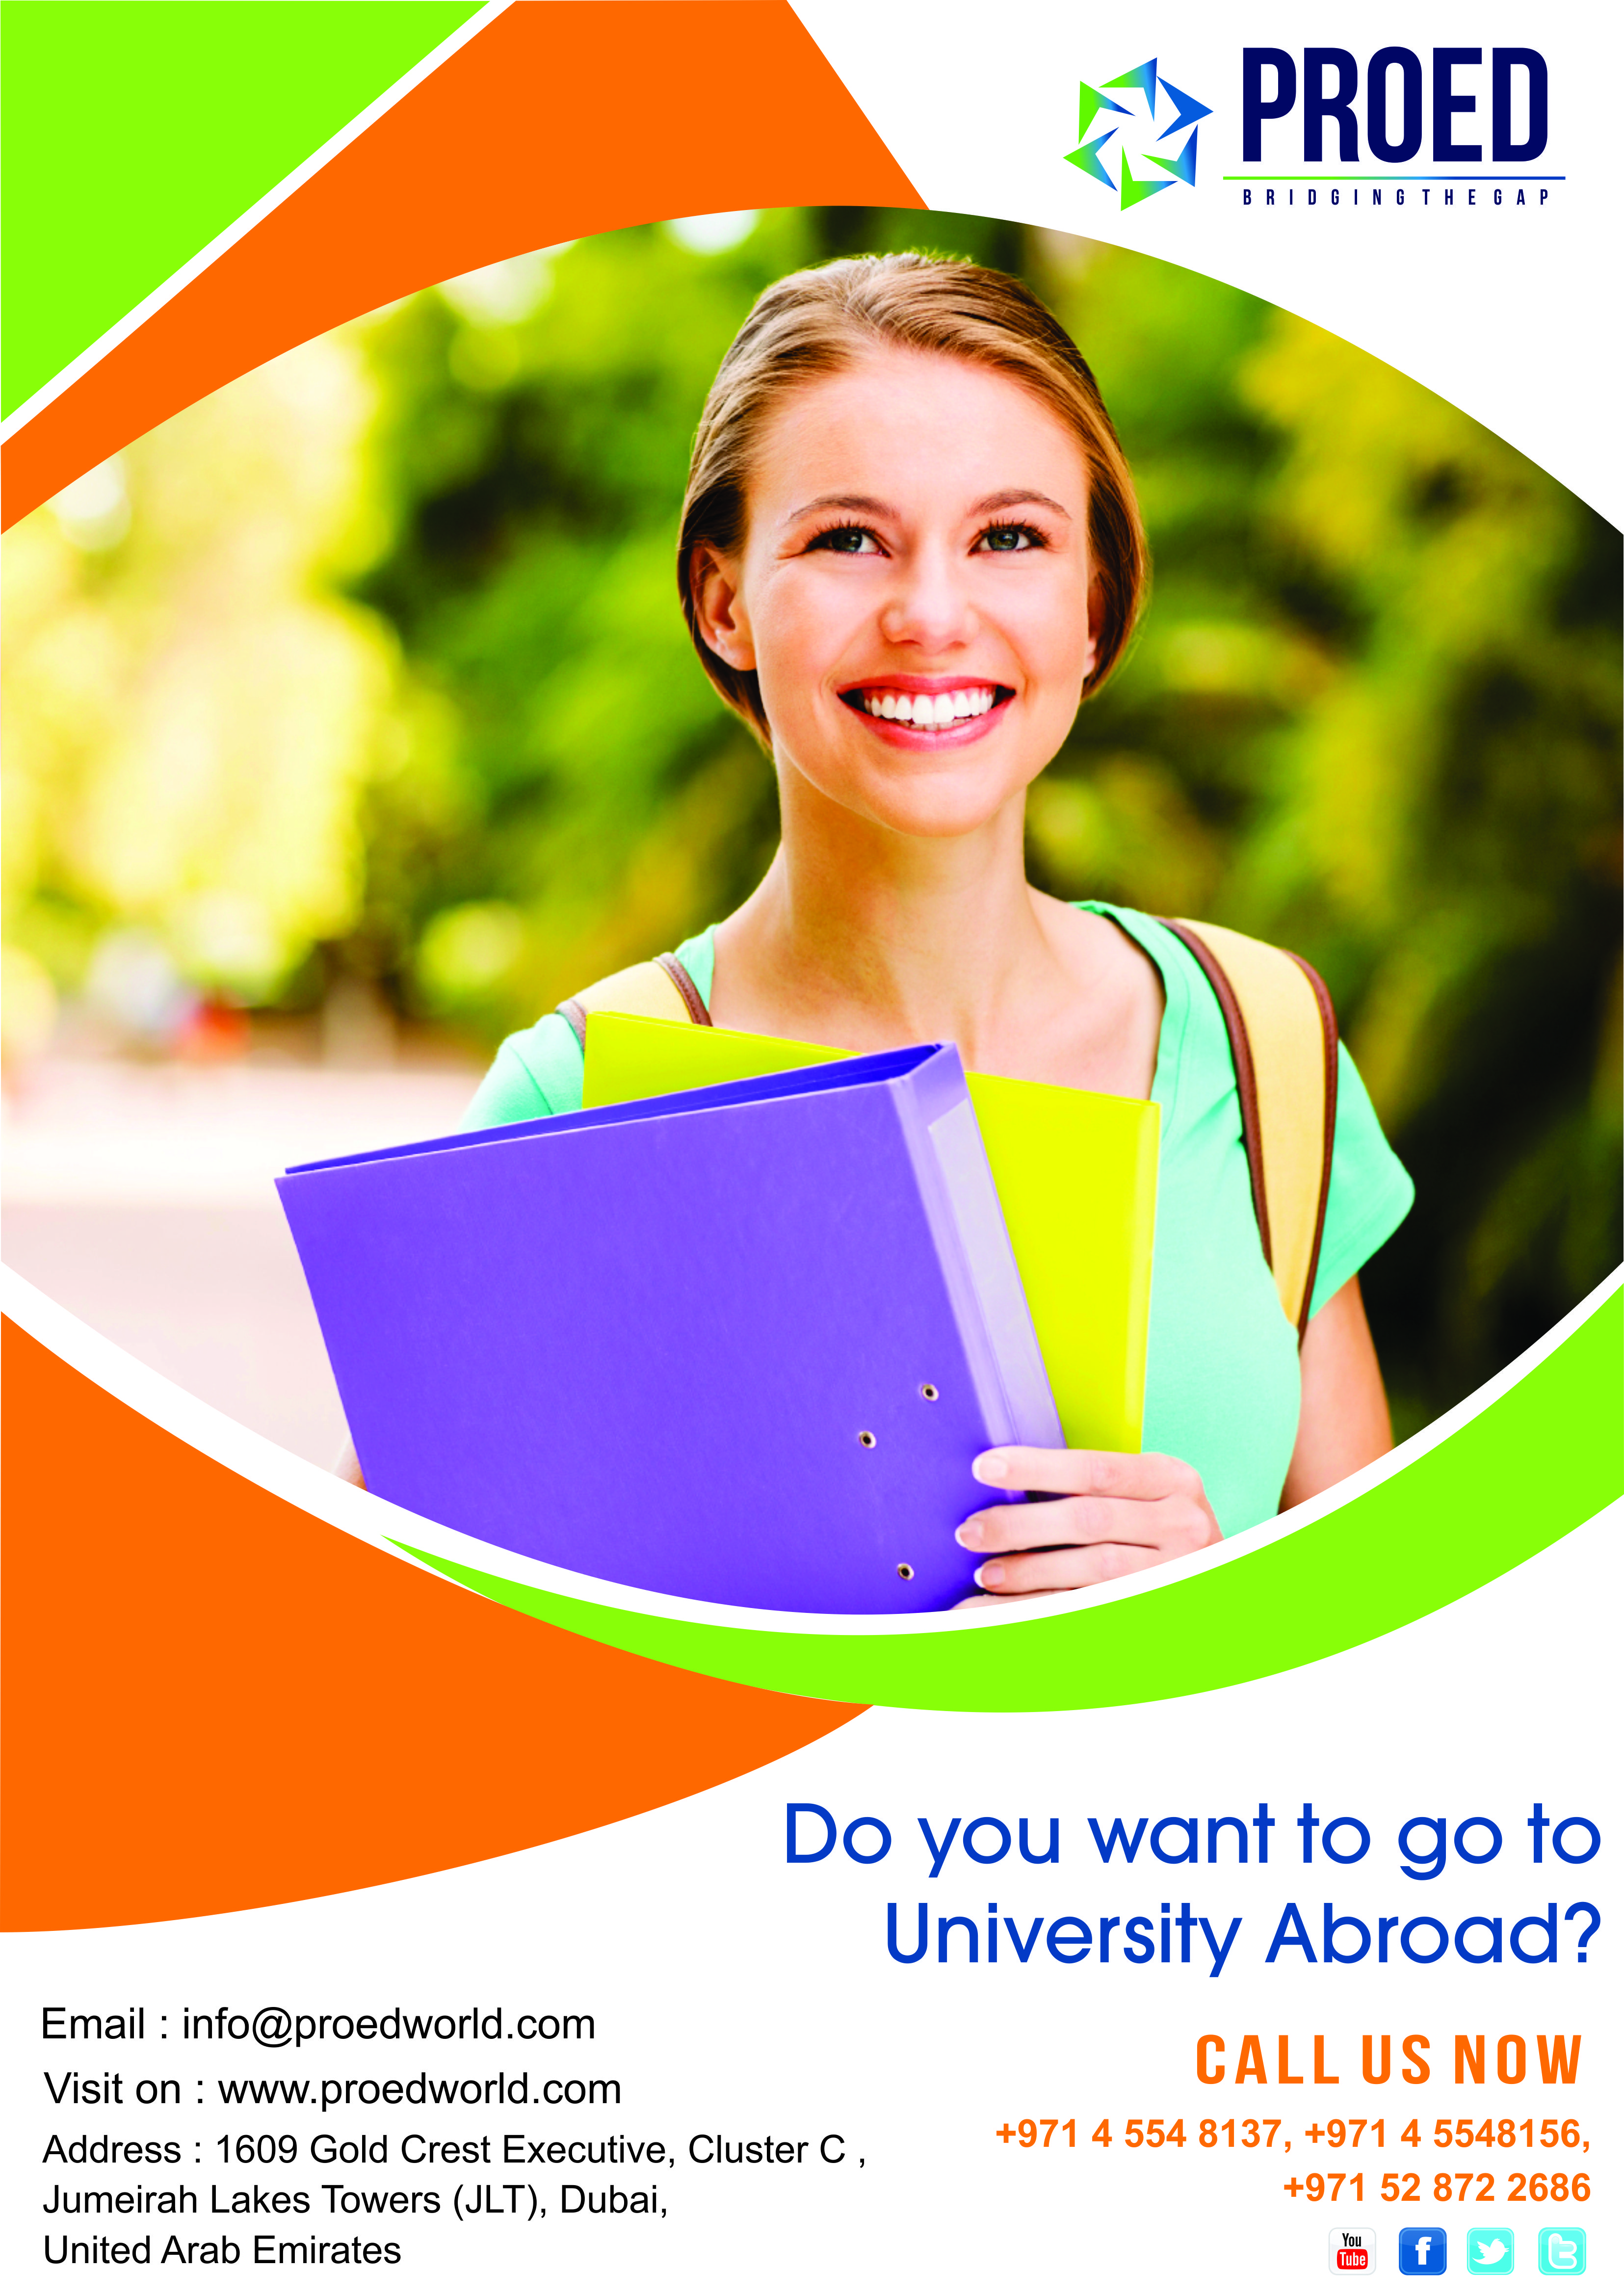 Give wings to your dreams Study Abroad. Consult our